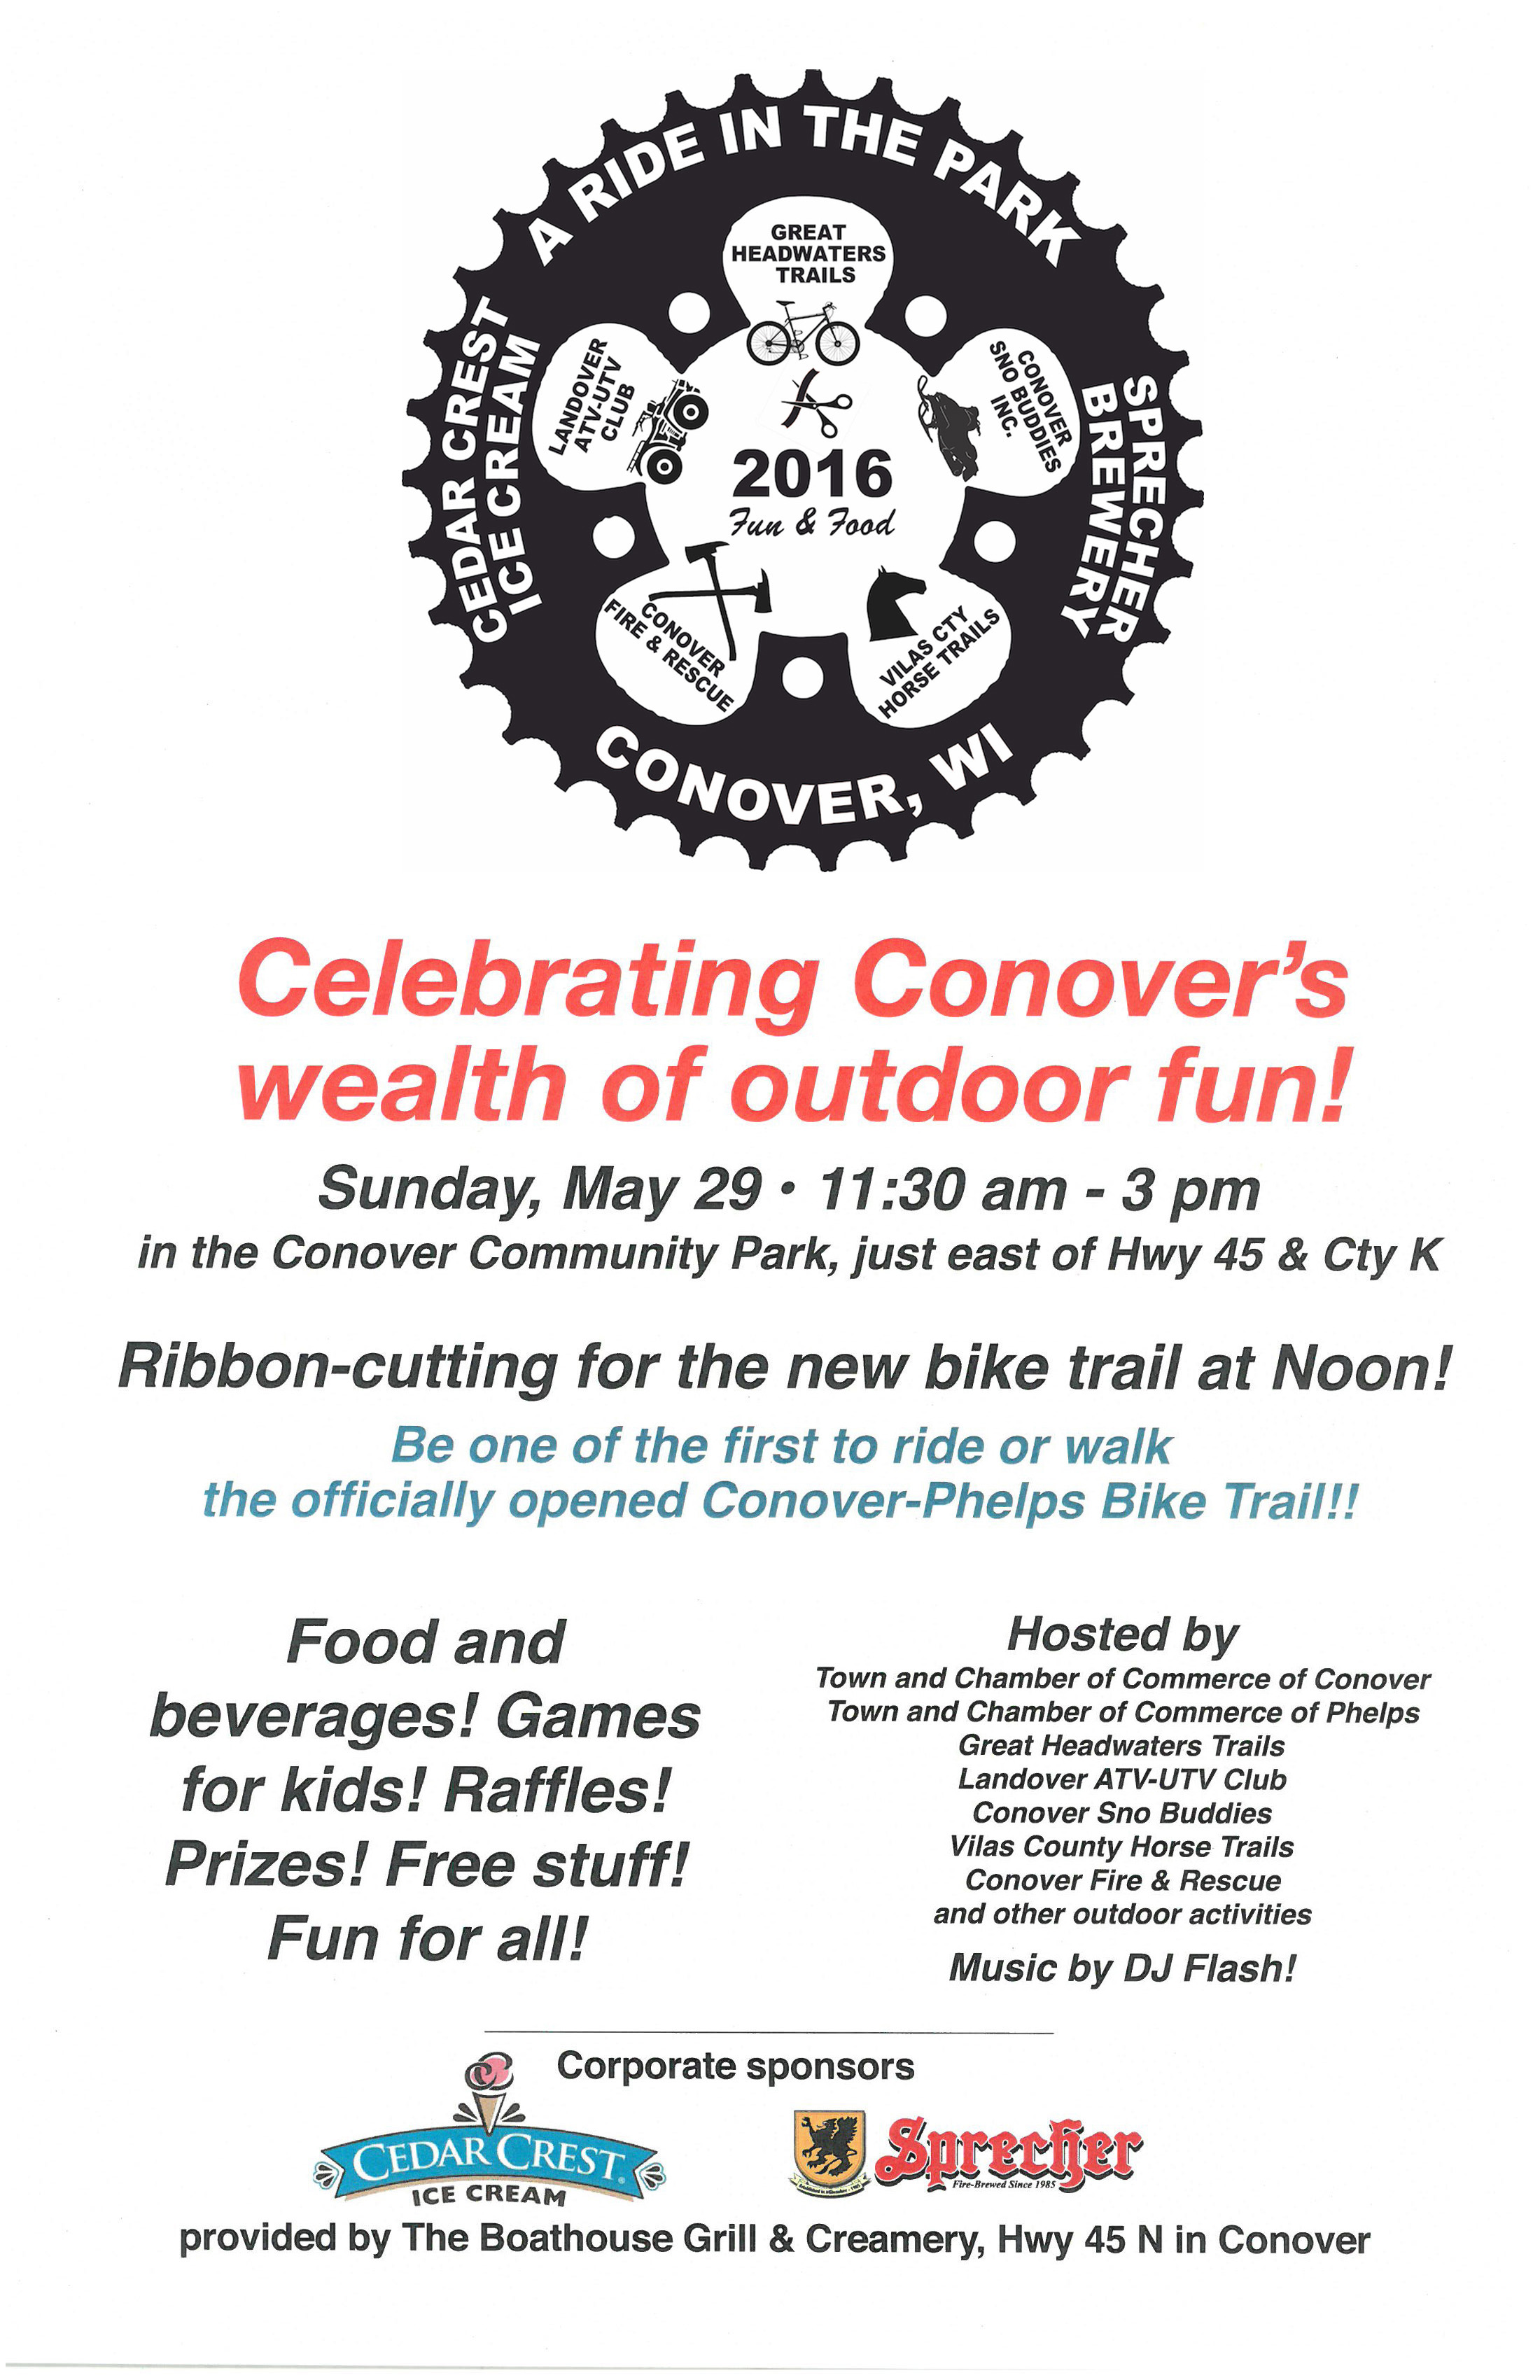 Conover's A Ride in the Park Event